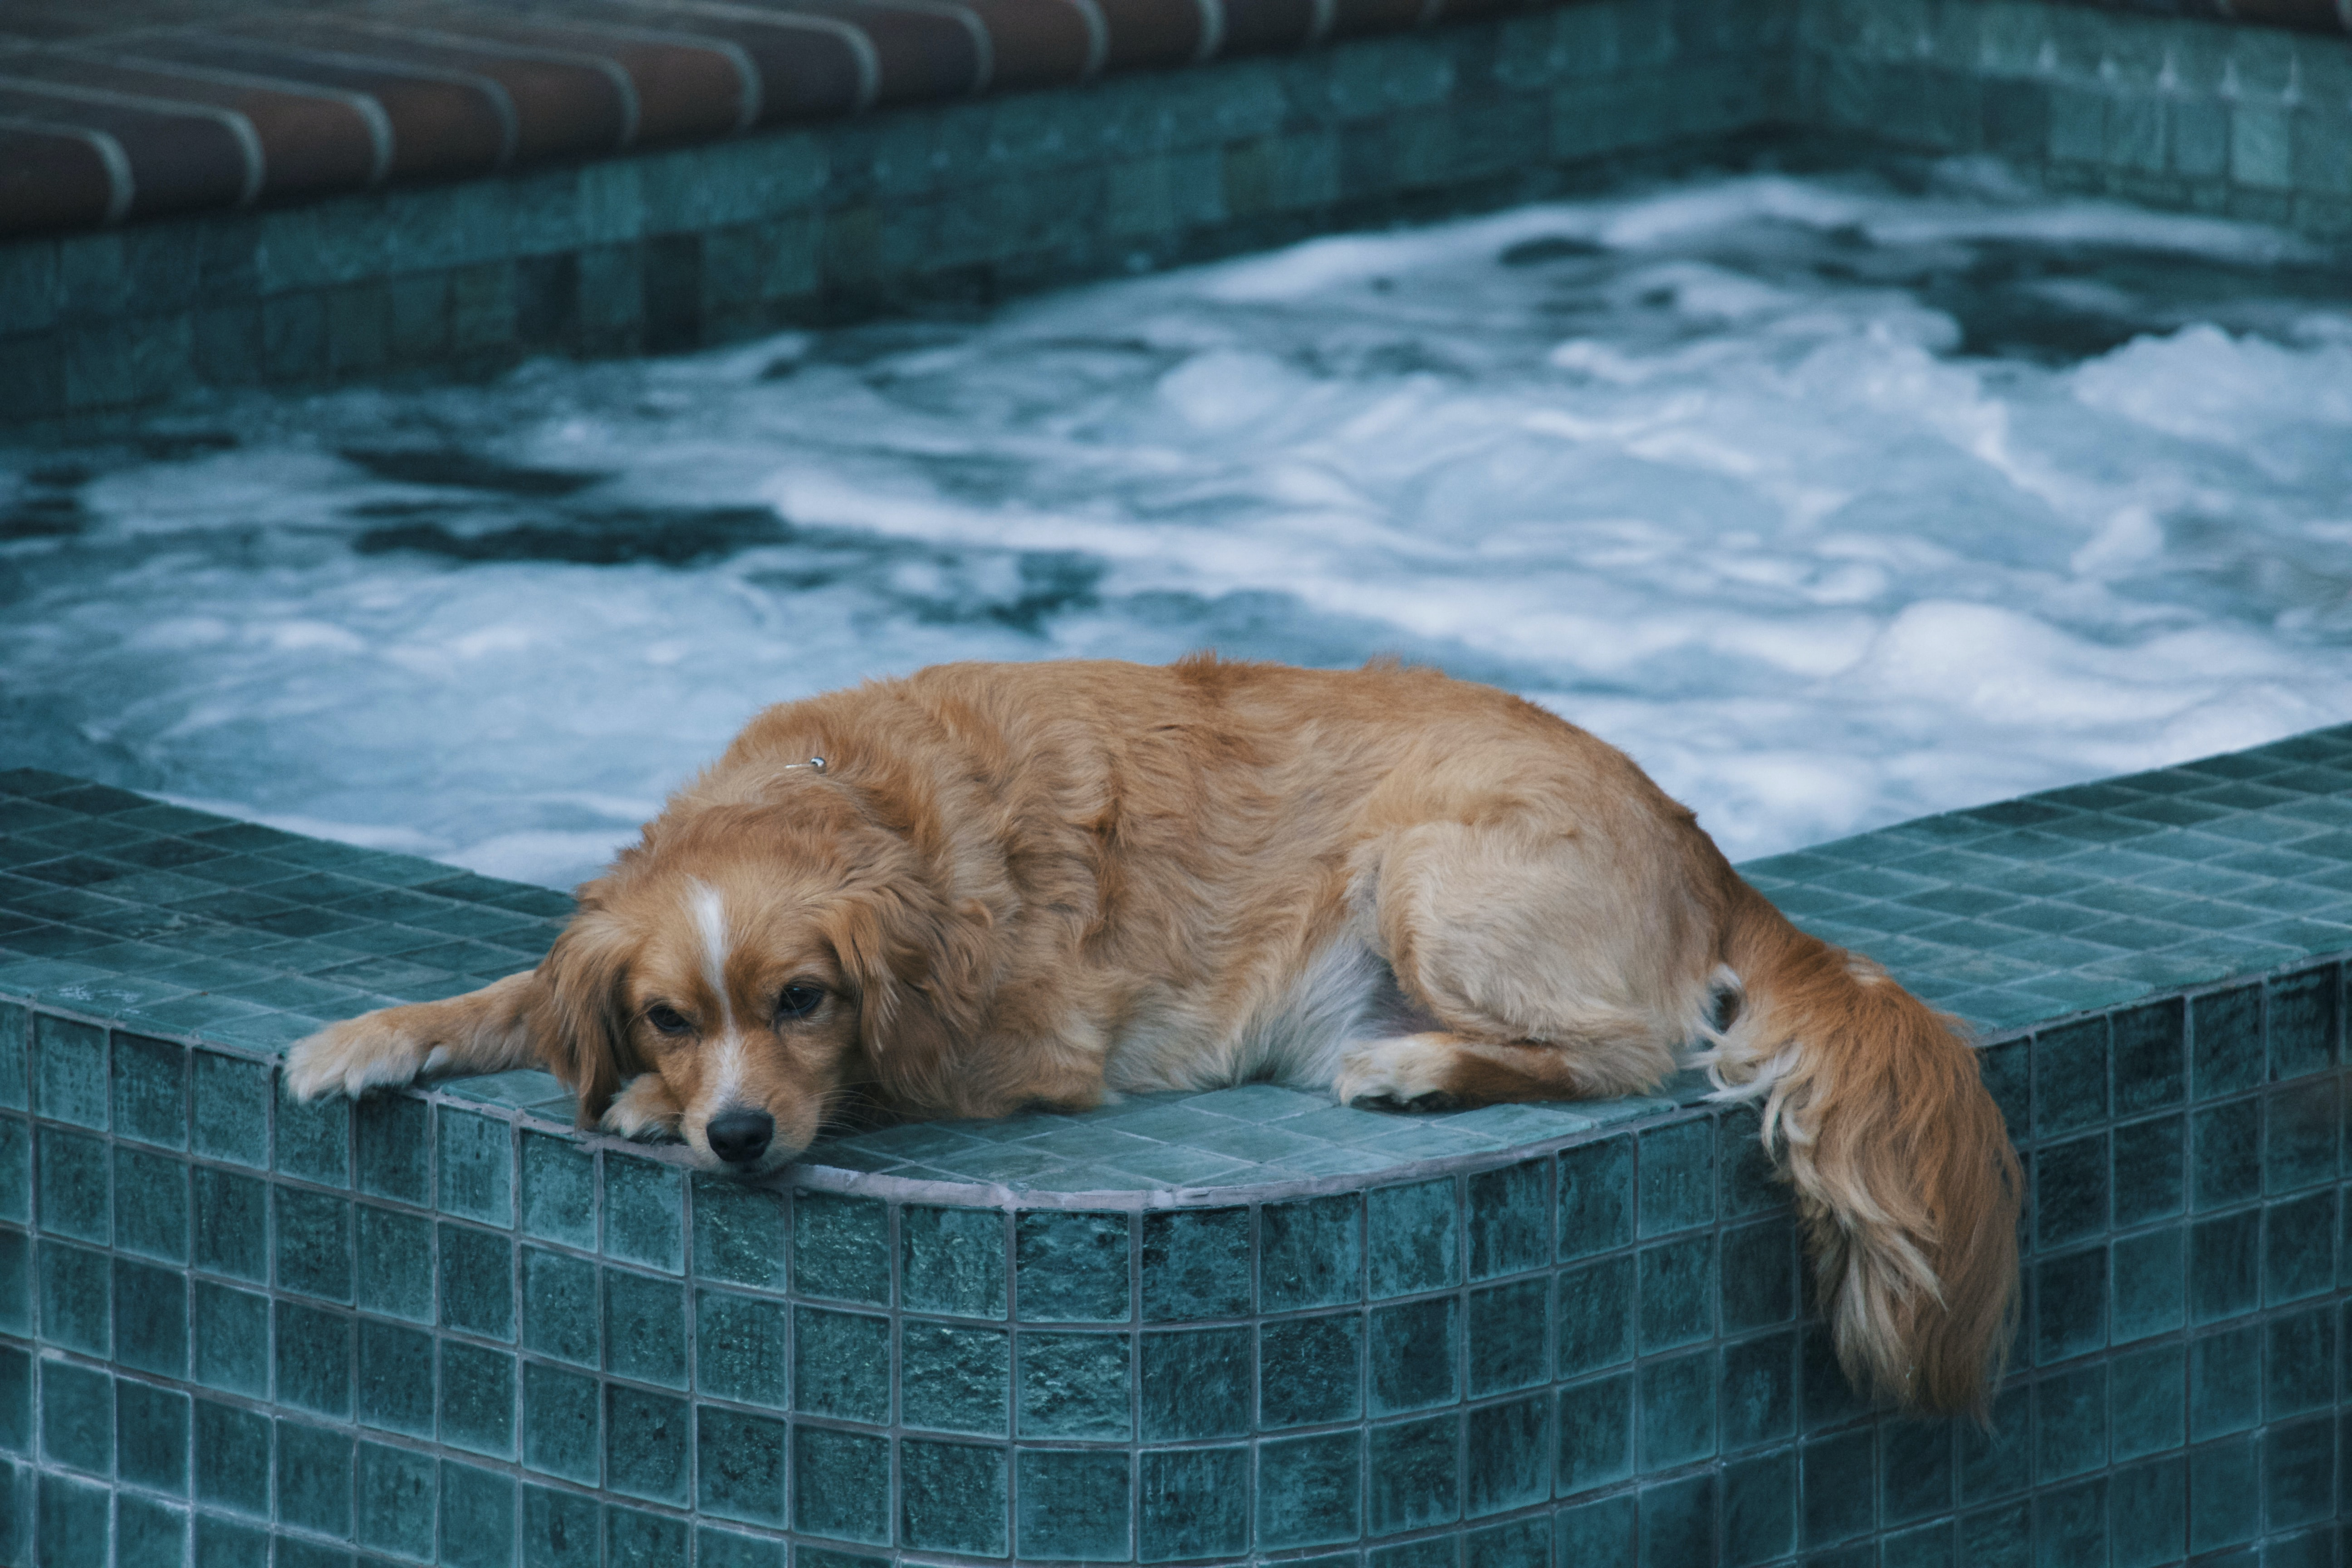 brown dog lying on edge of hot tub during daytime